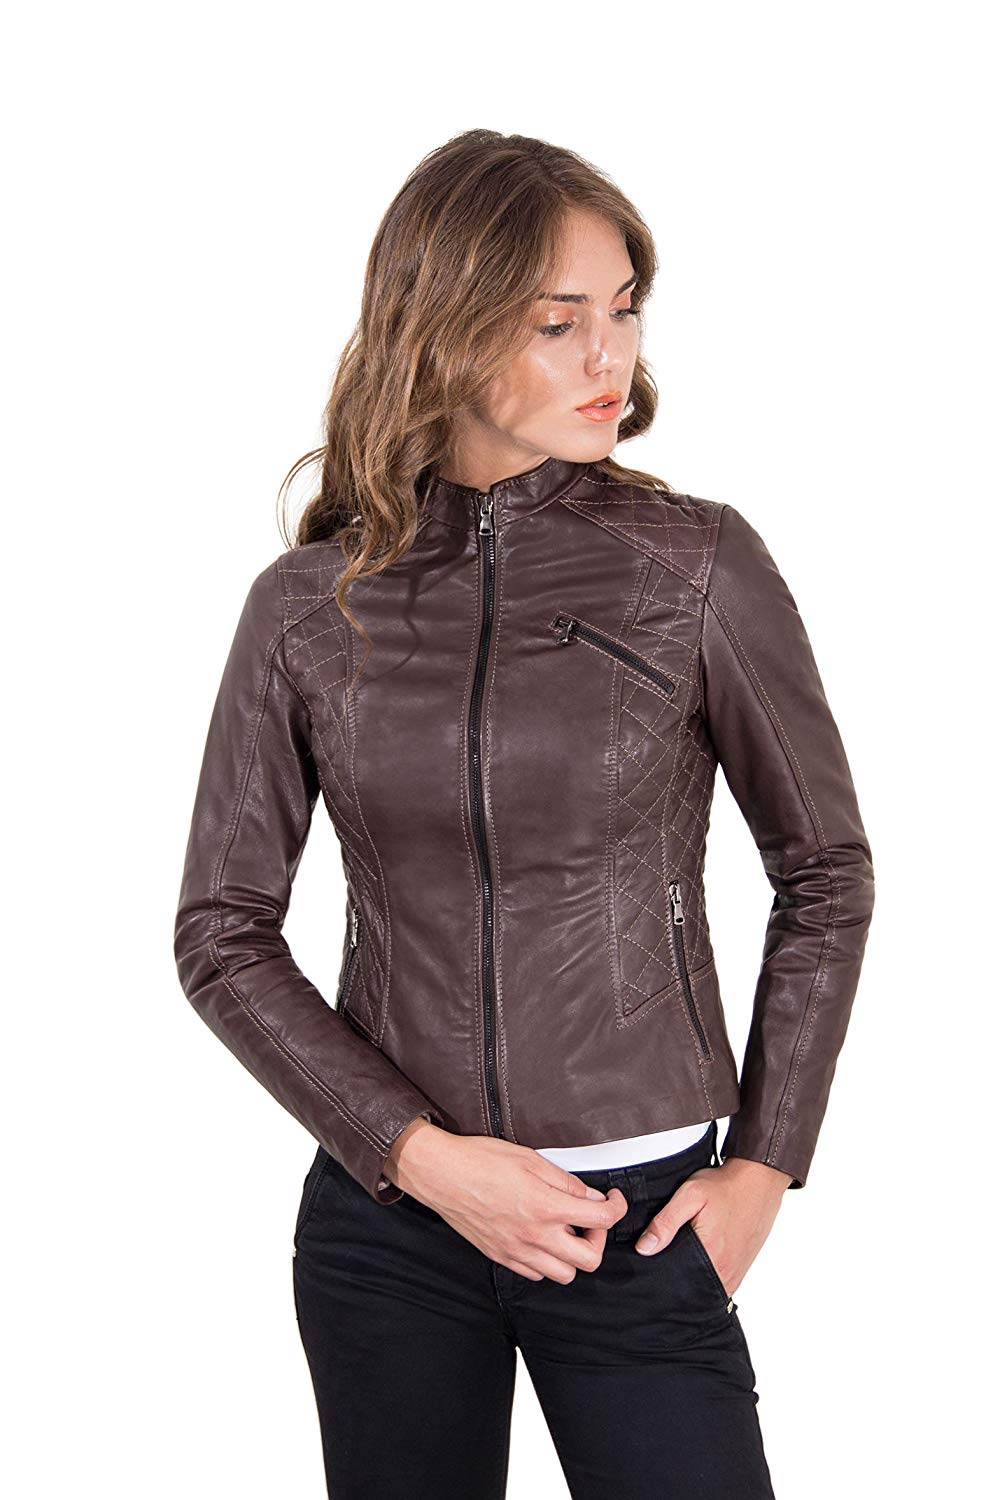 Cheap Quilted Leather Moto Jacket Find Quilted Leather Moto Jacket